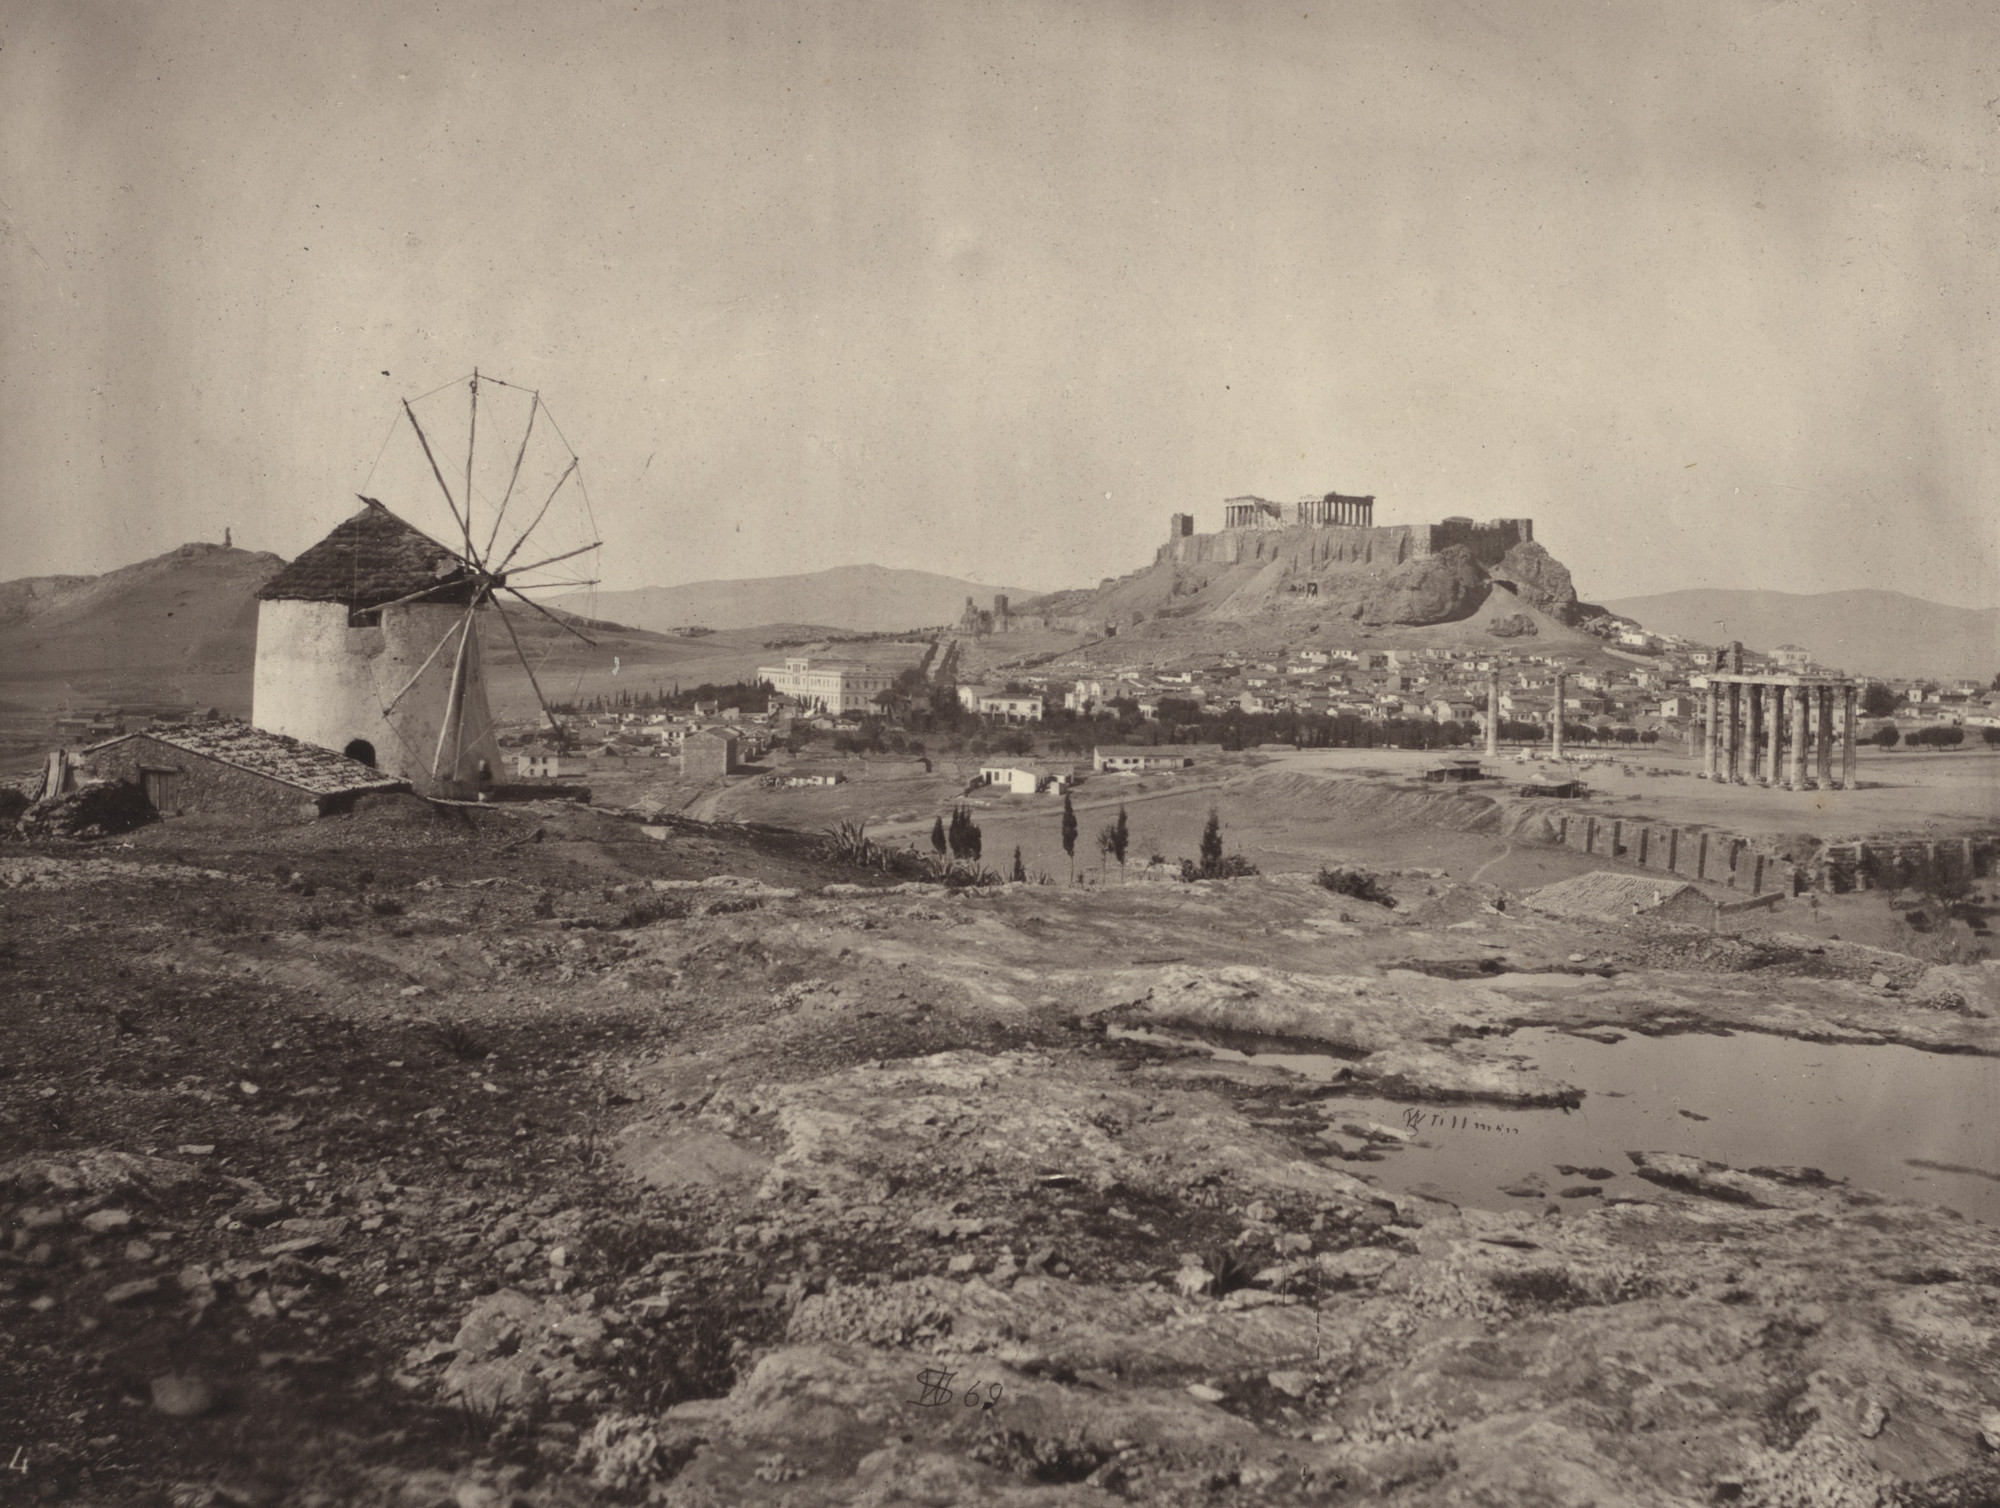 William James Stillman. The Acropolis, From the Hill above the Ilissus, Looking North-West. 1869